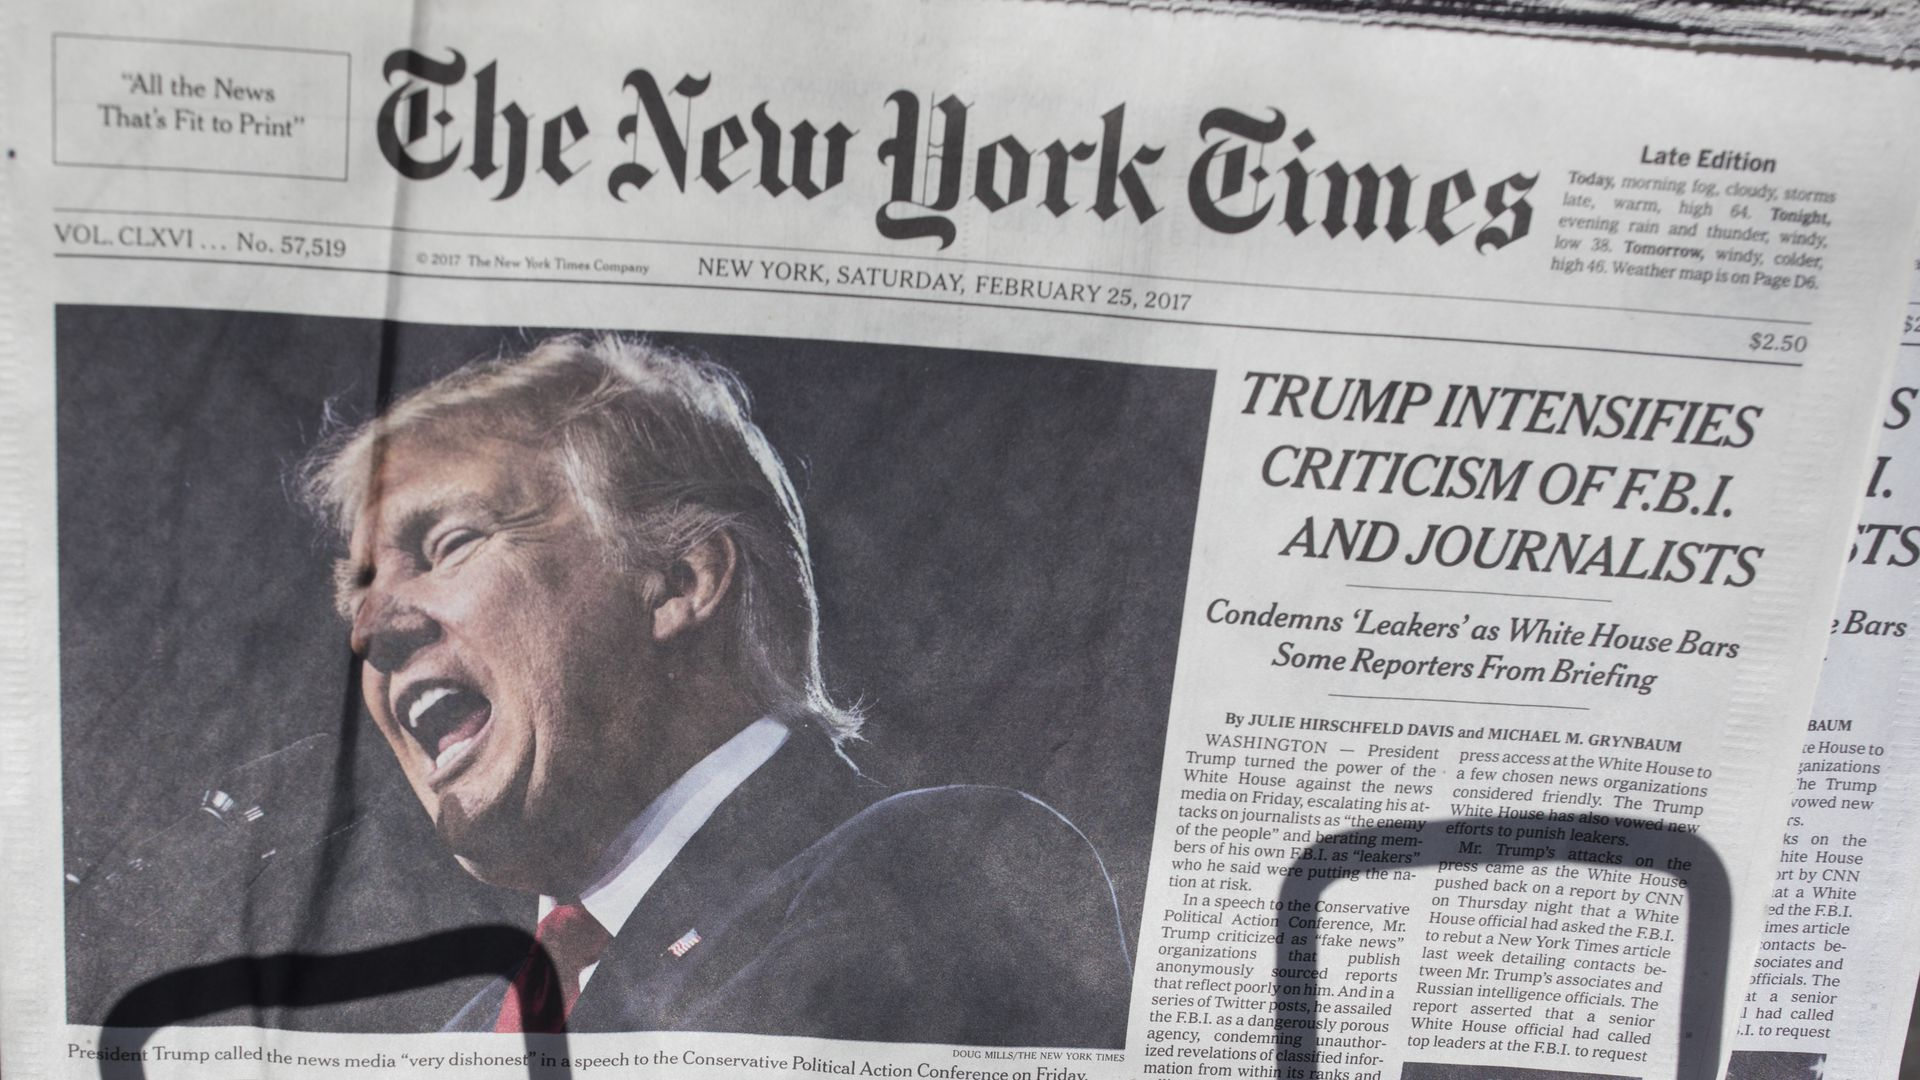 A New York Times paper with Trump on the front page